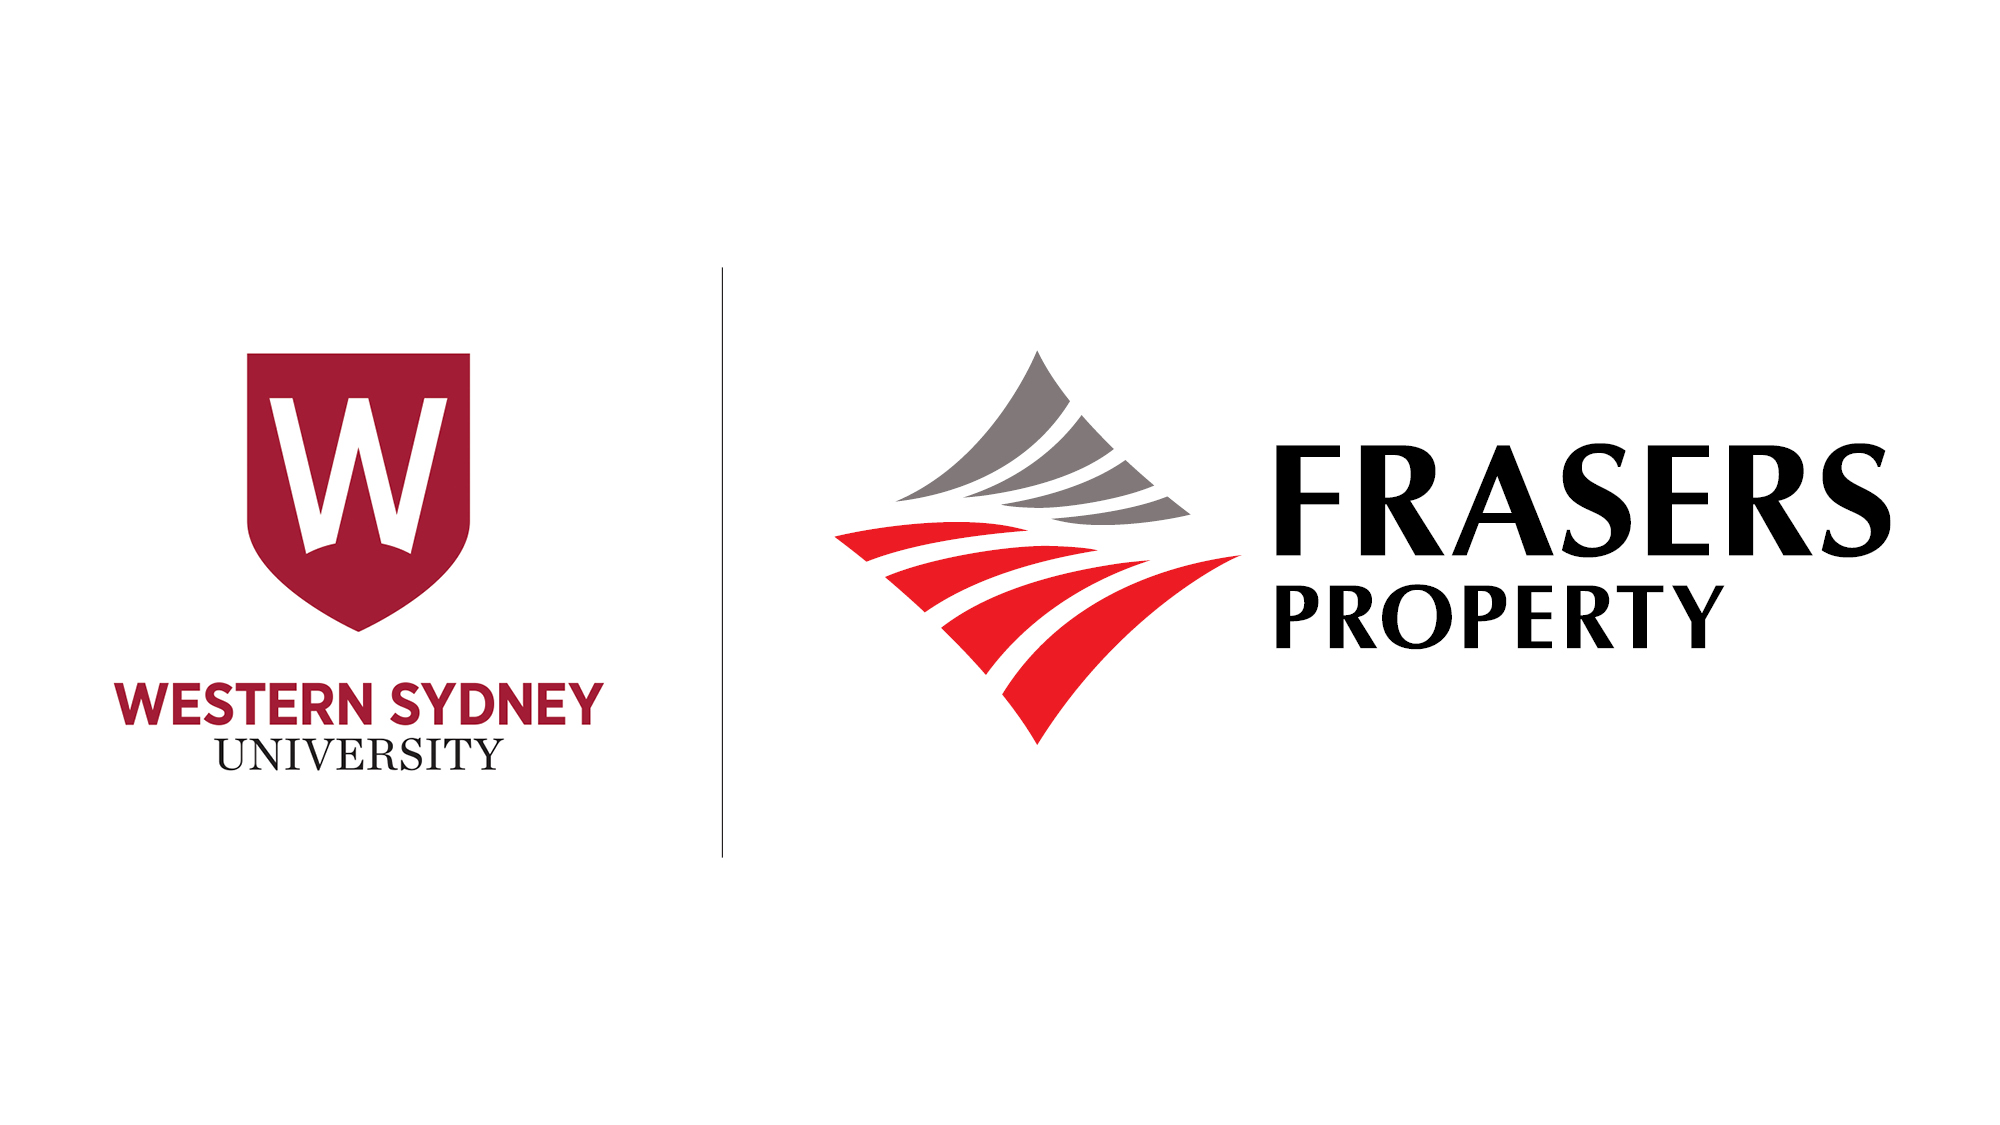 Western Sydney University and Frasers Property scholarhsip